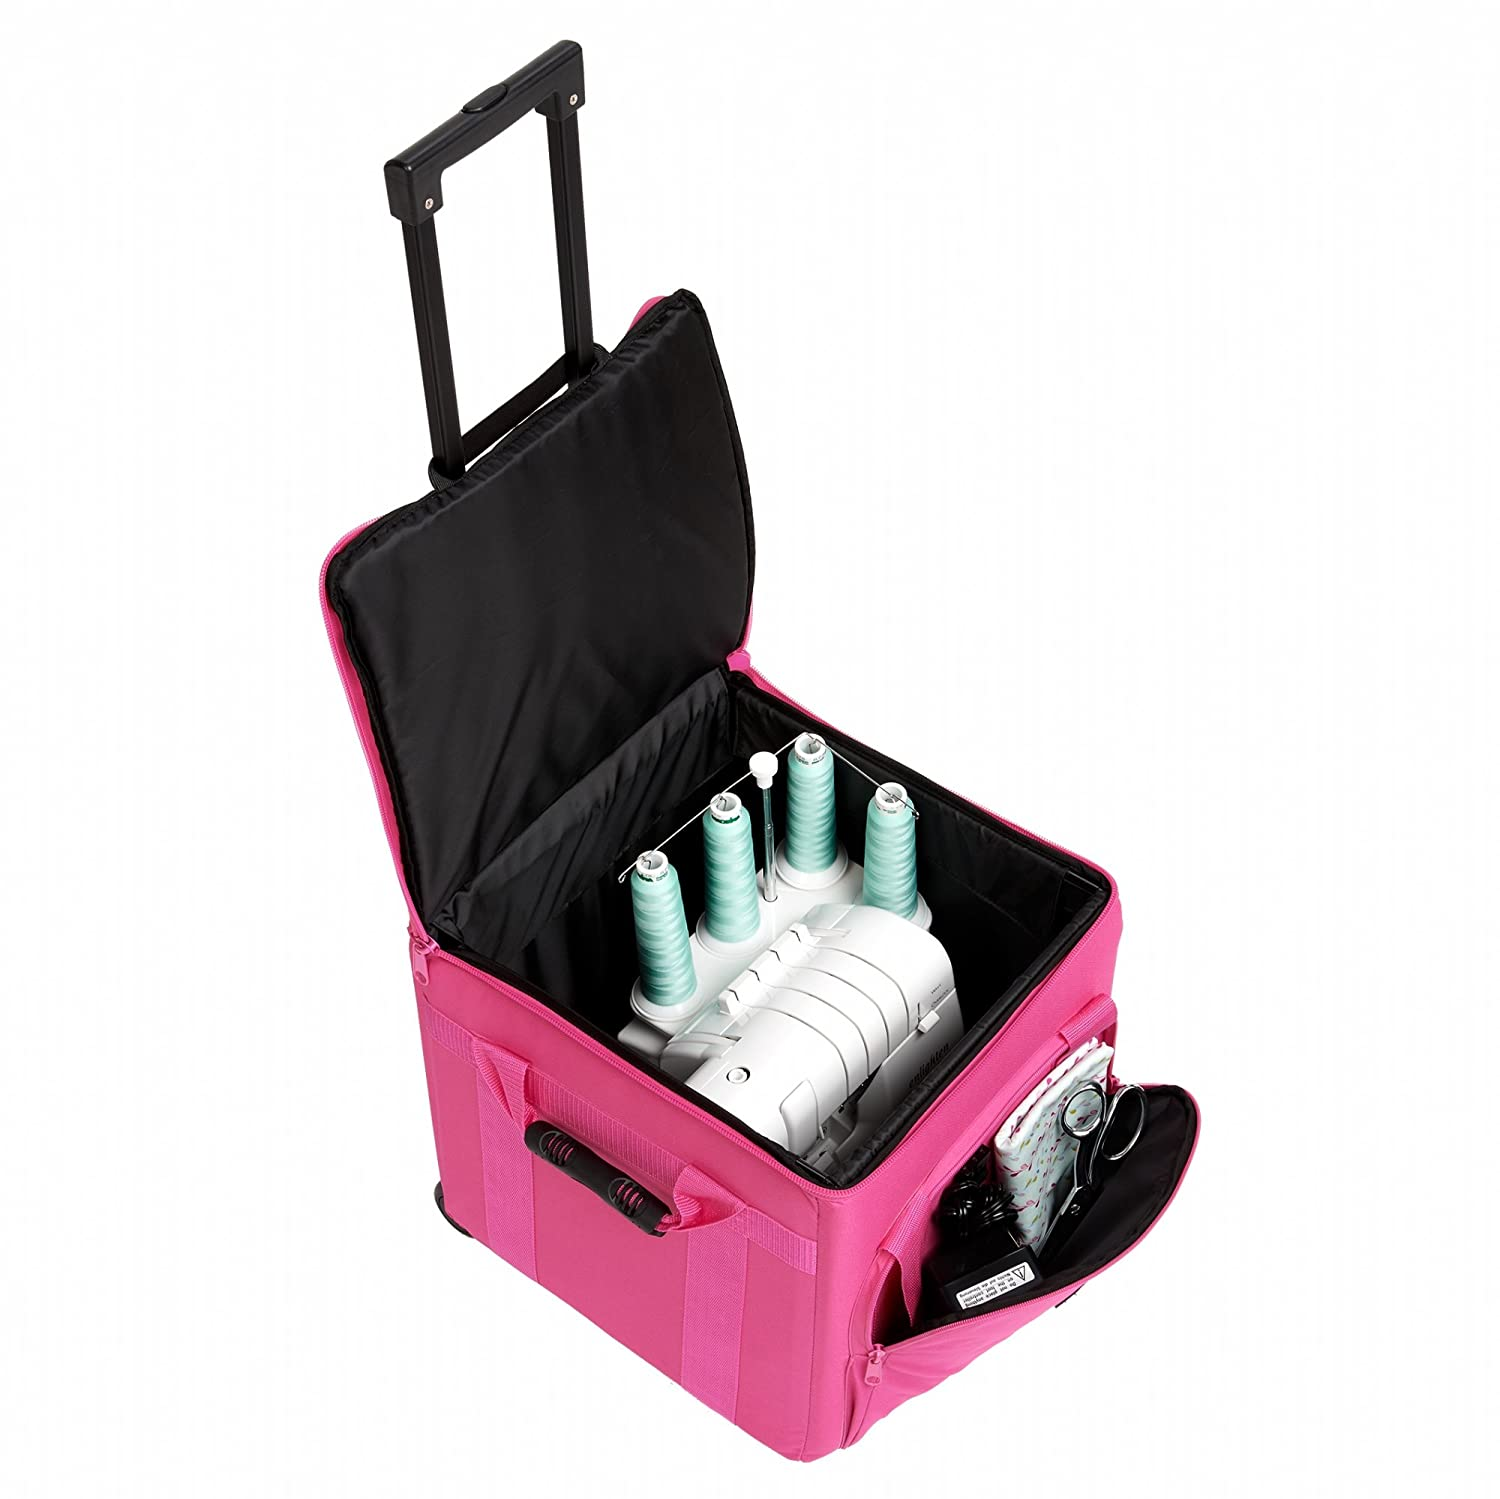 Creative Notions XL Serger Trolley in Pink